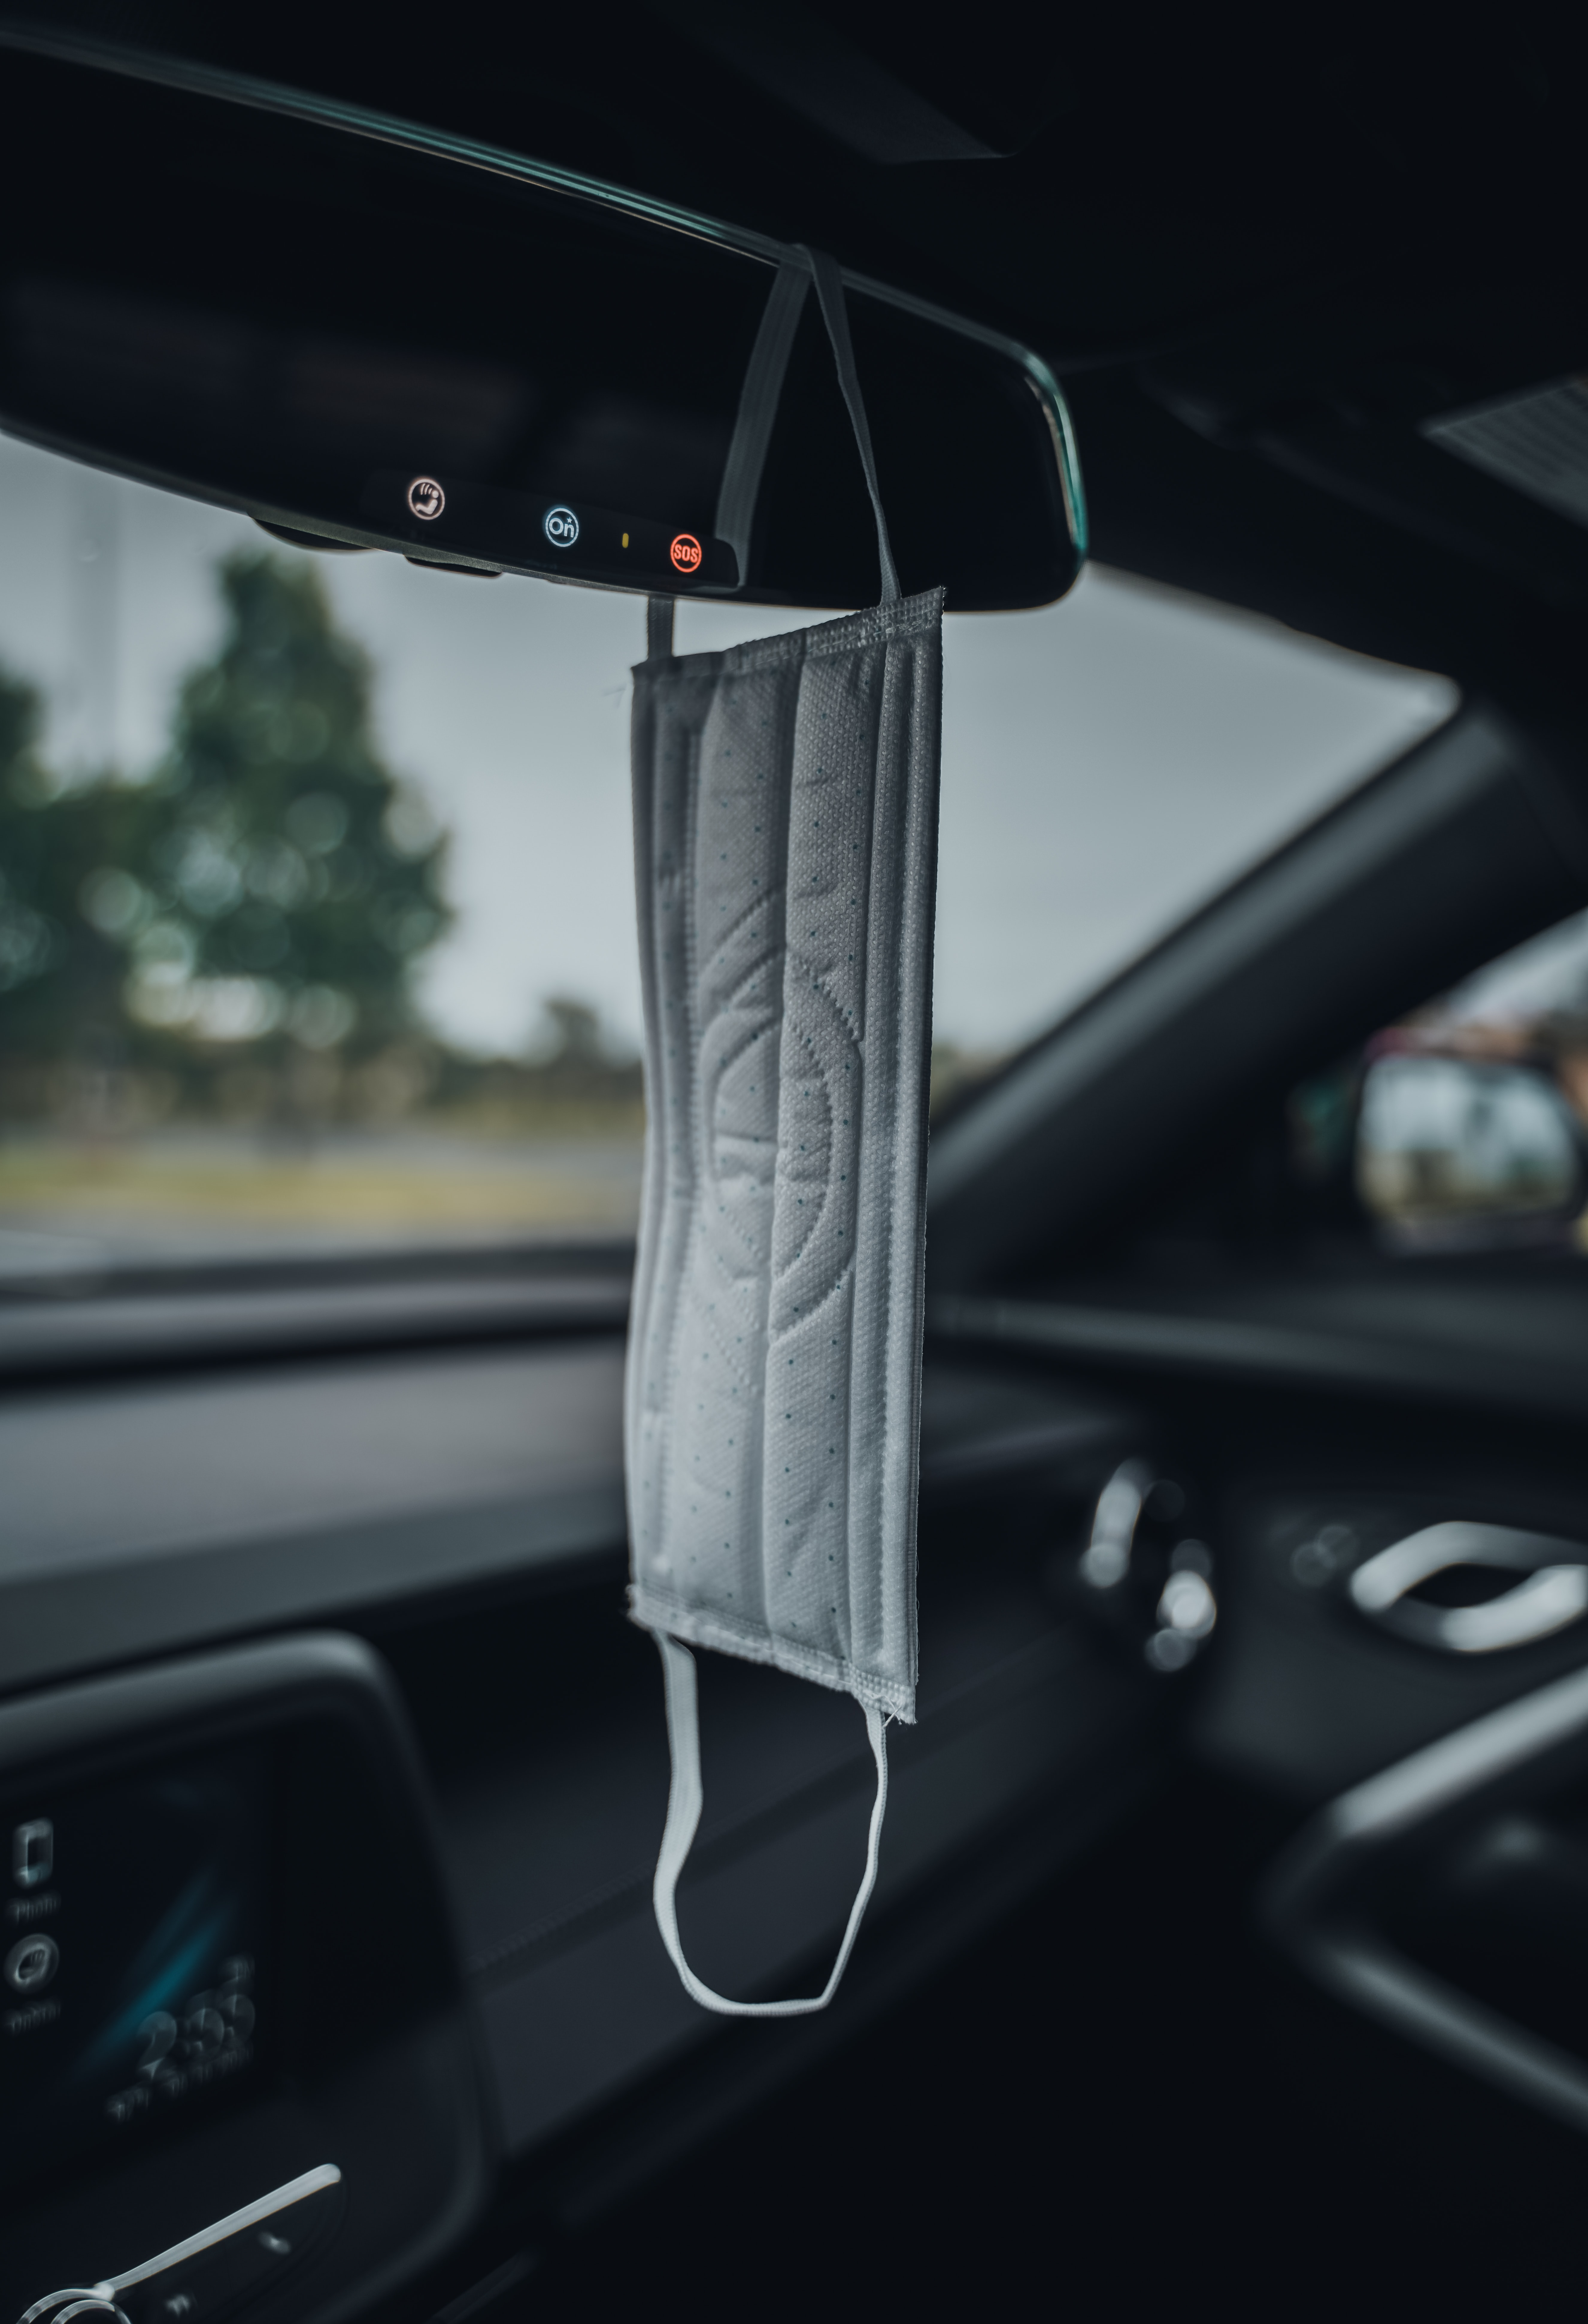 face mask hanging from car rearview mirror